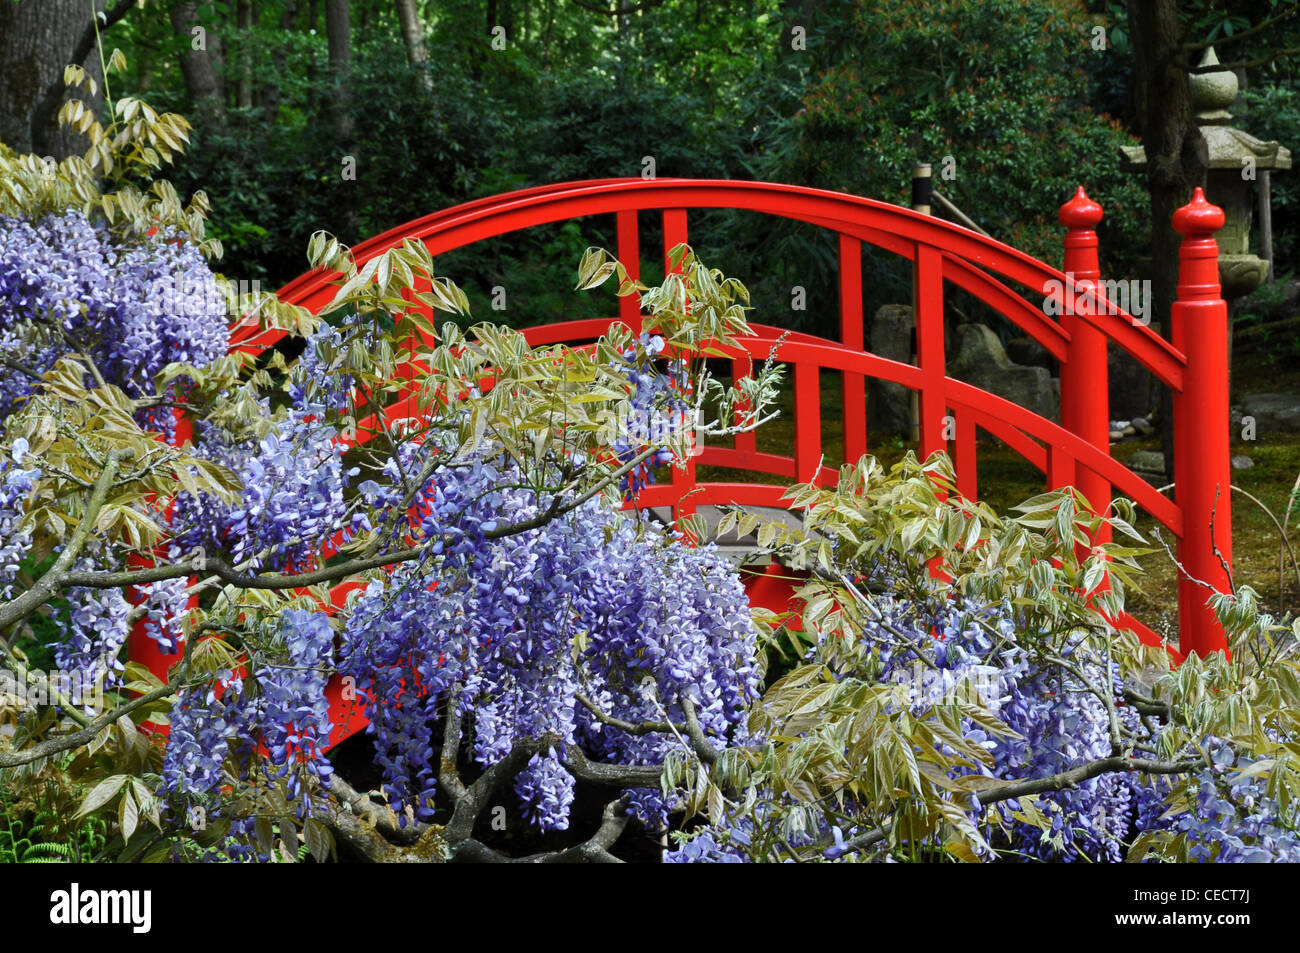 Red Bridge In Japanese Garden, The Hague, Netherlands, Europe   Stock Photo